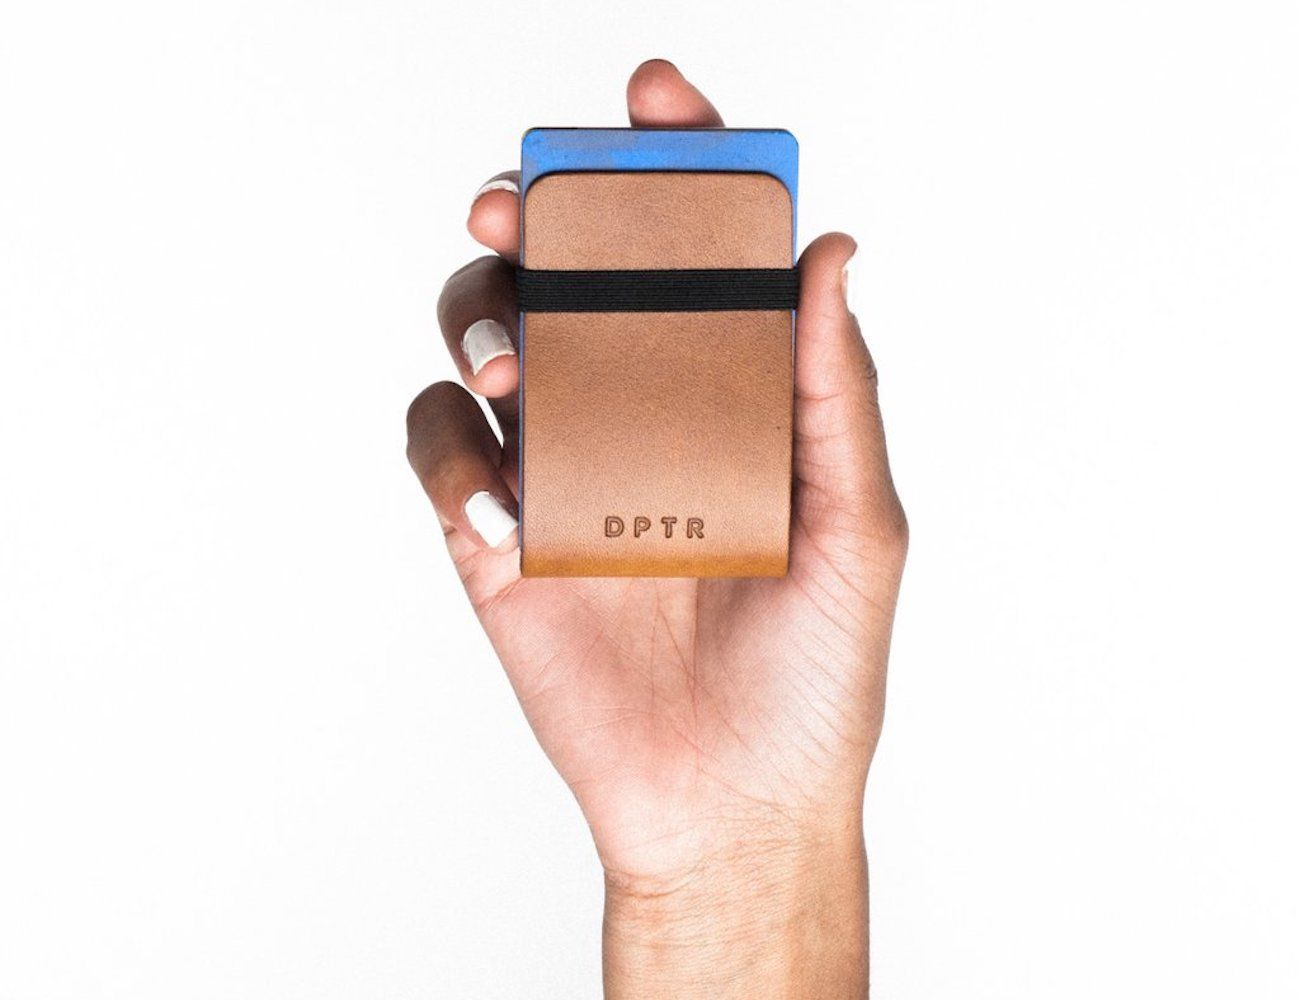 DPTR Clamshell Leather Wallet